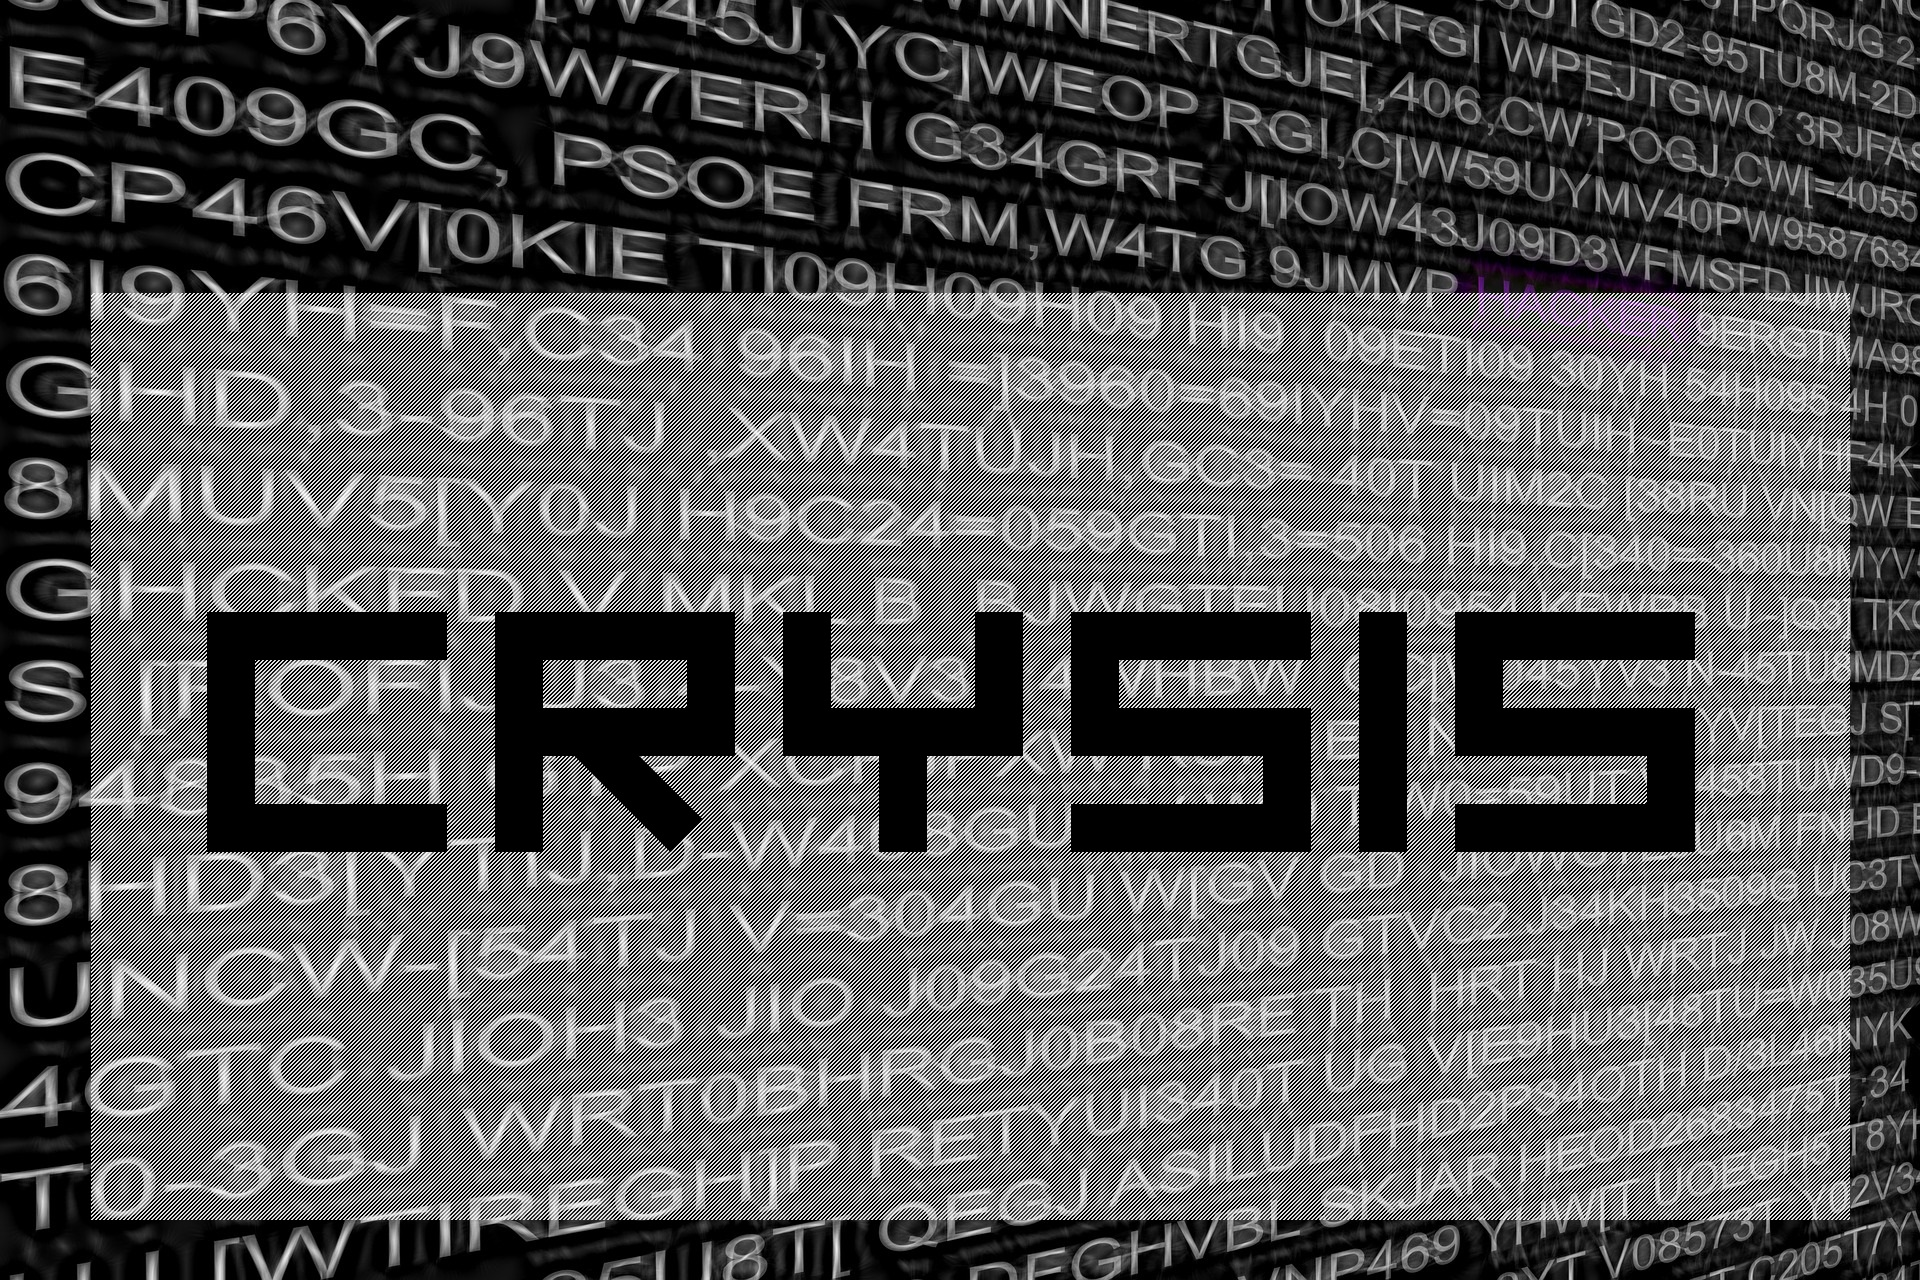 Remote Attacks Cause CrySiS Ransomware Infections